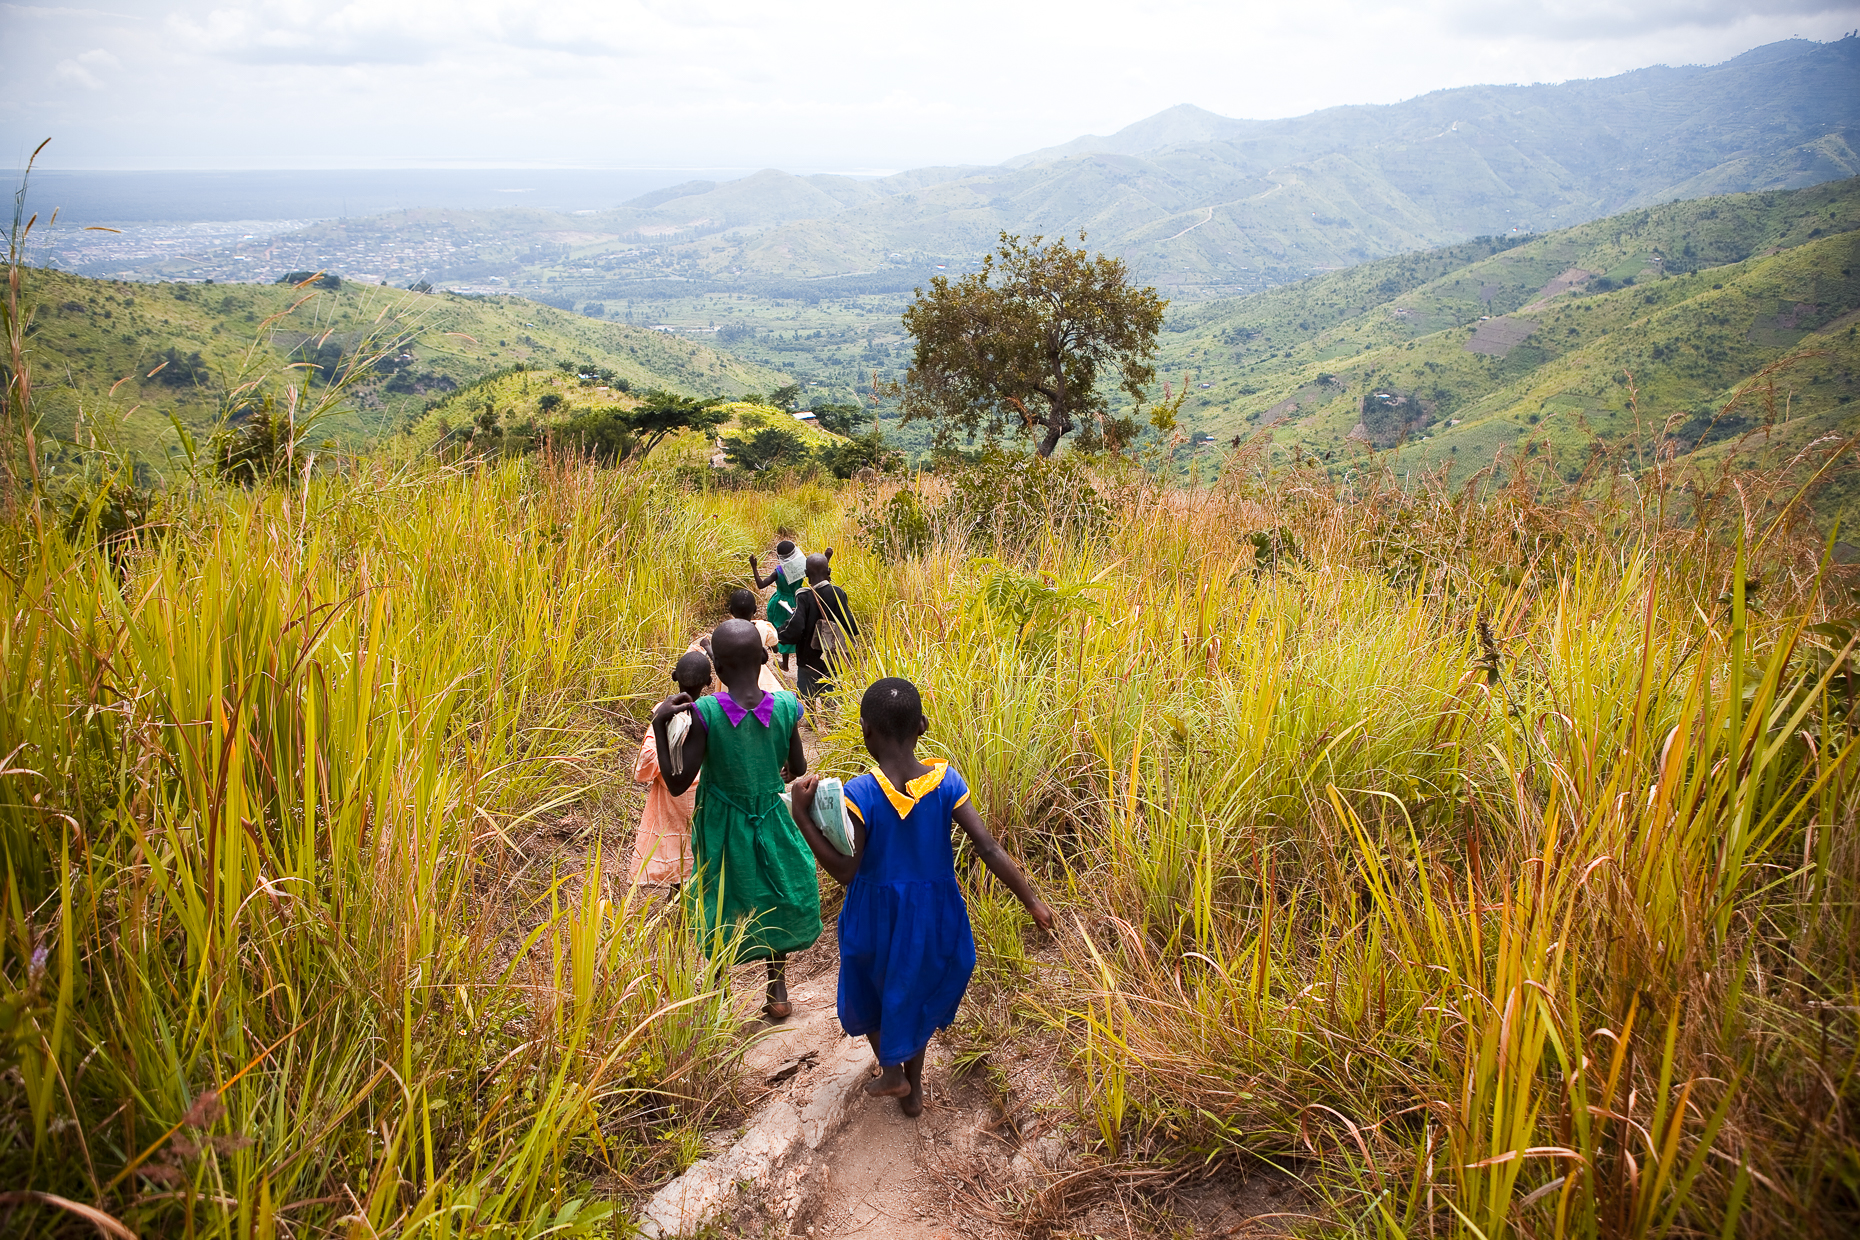 Children going home from school, Uganda